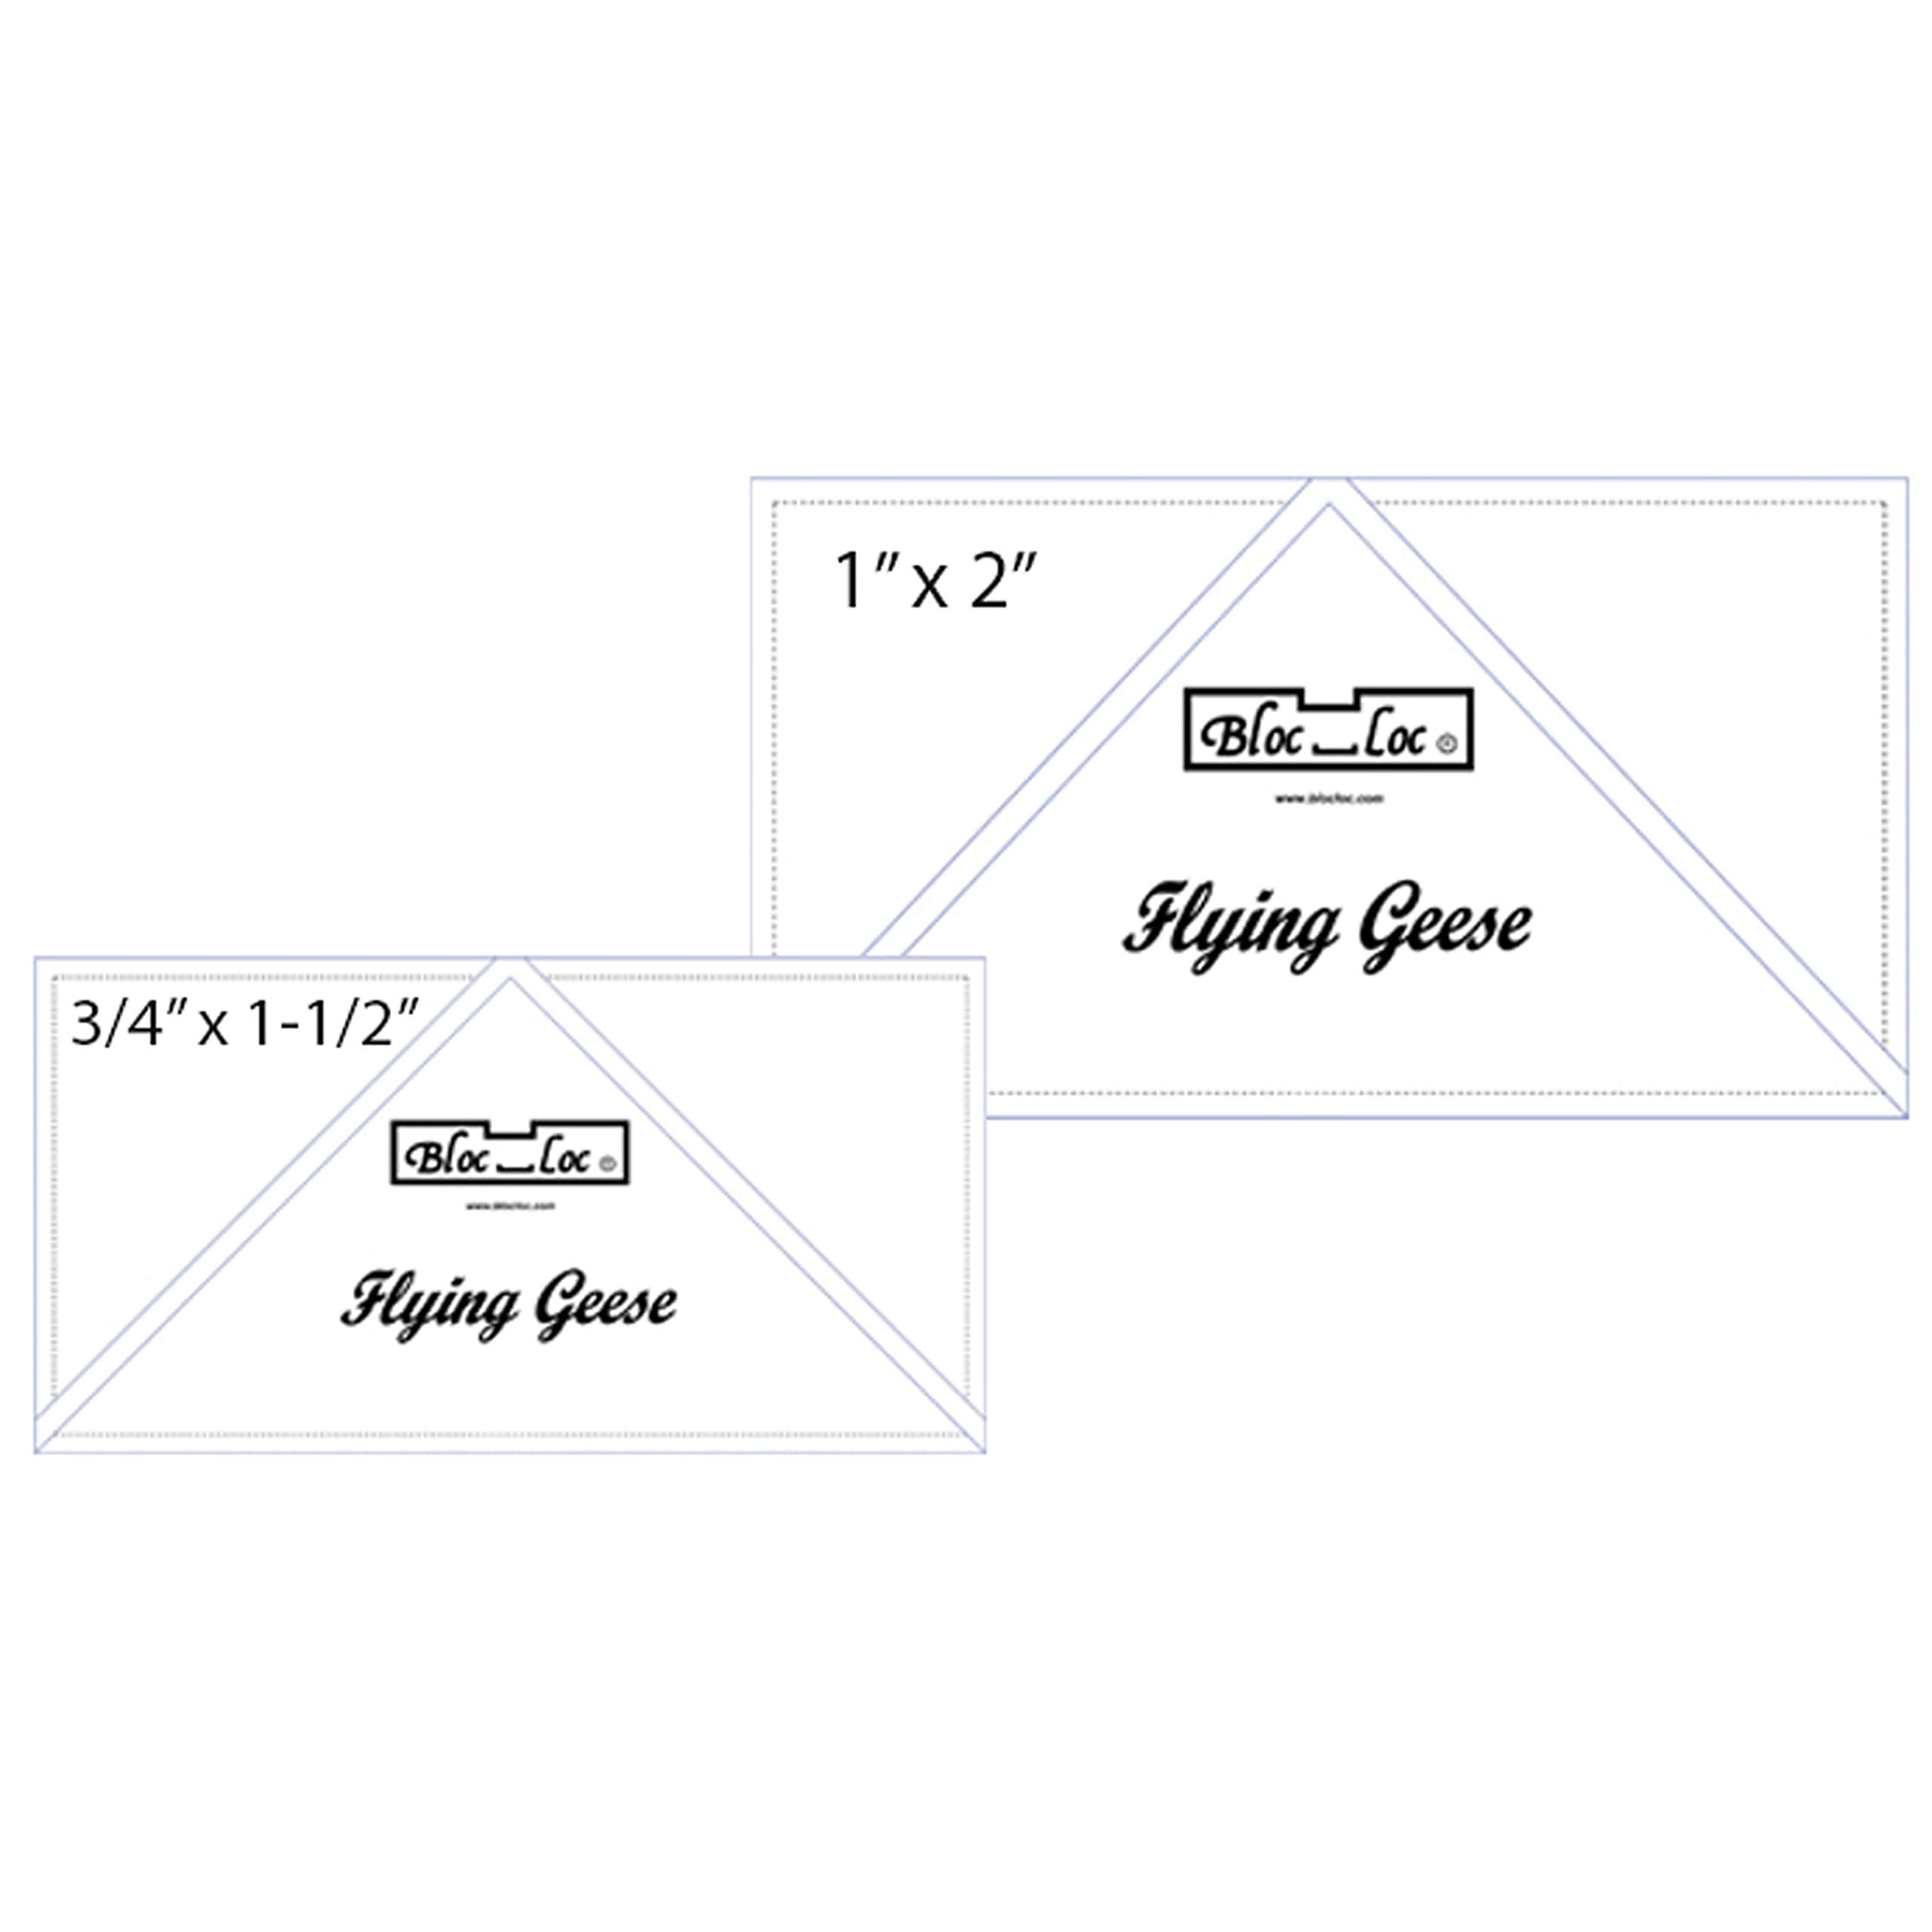 Bloc Loc 0.75'' x 1.5'' & 1'' x 2'' Flying Geese Square Up Rulers Set #4 by Bloc Loc